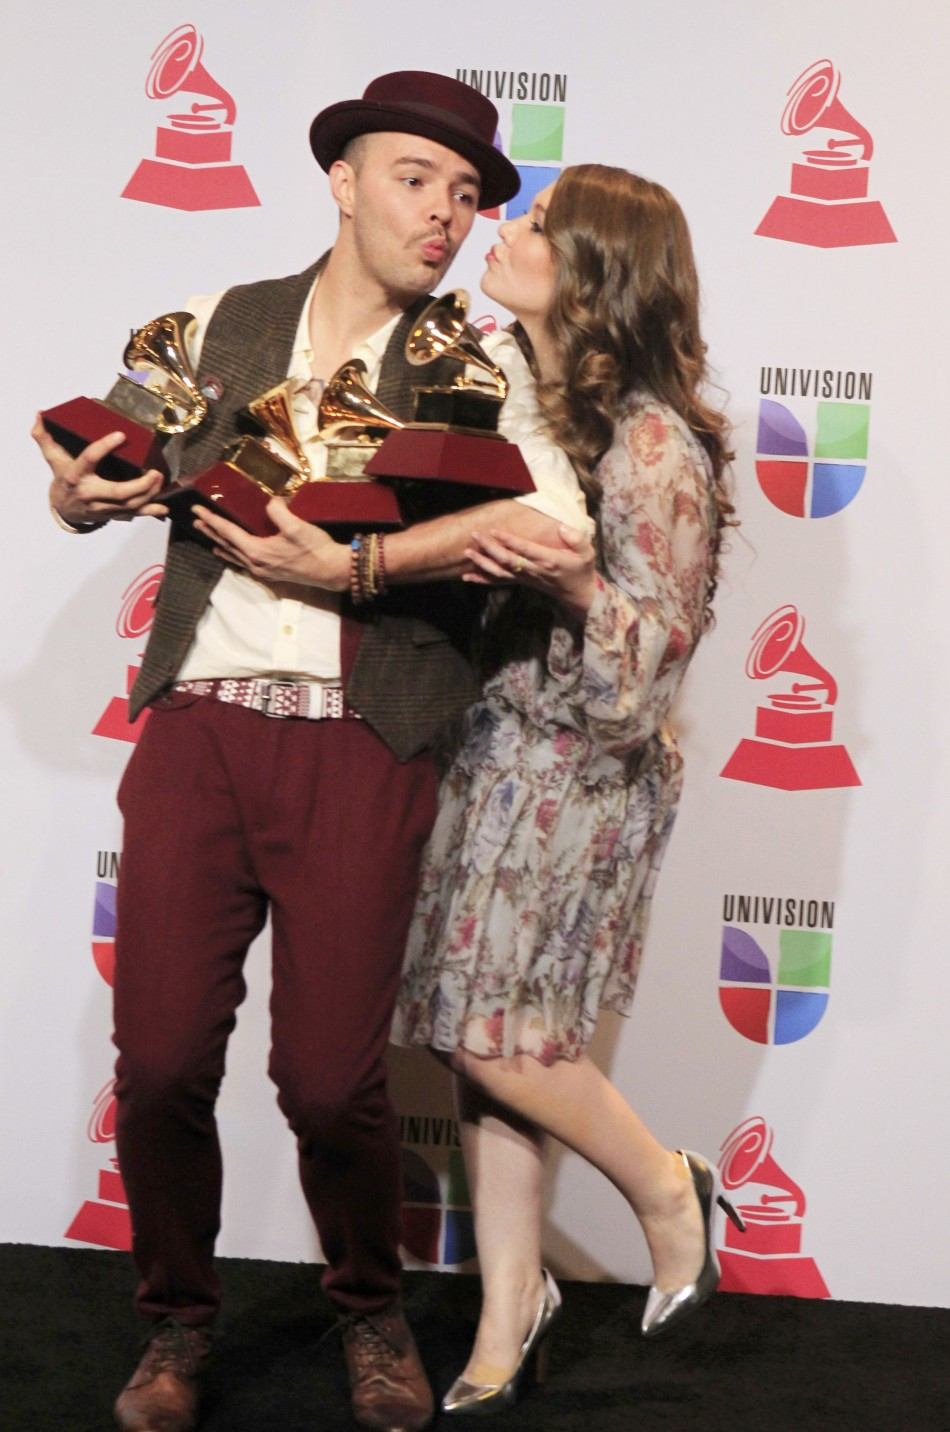 Jesse & Joy pose with their four awards during the 13th Latin Grammy Awards in Las Vegas